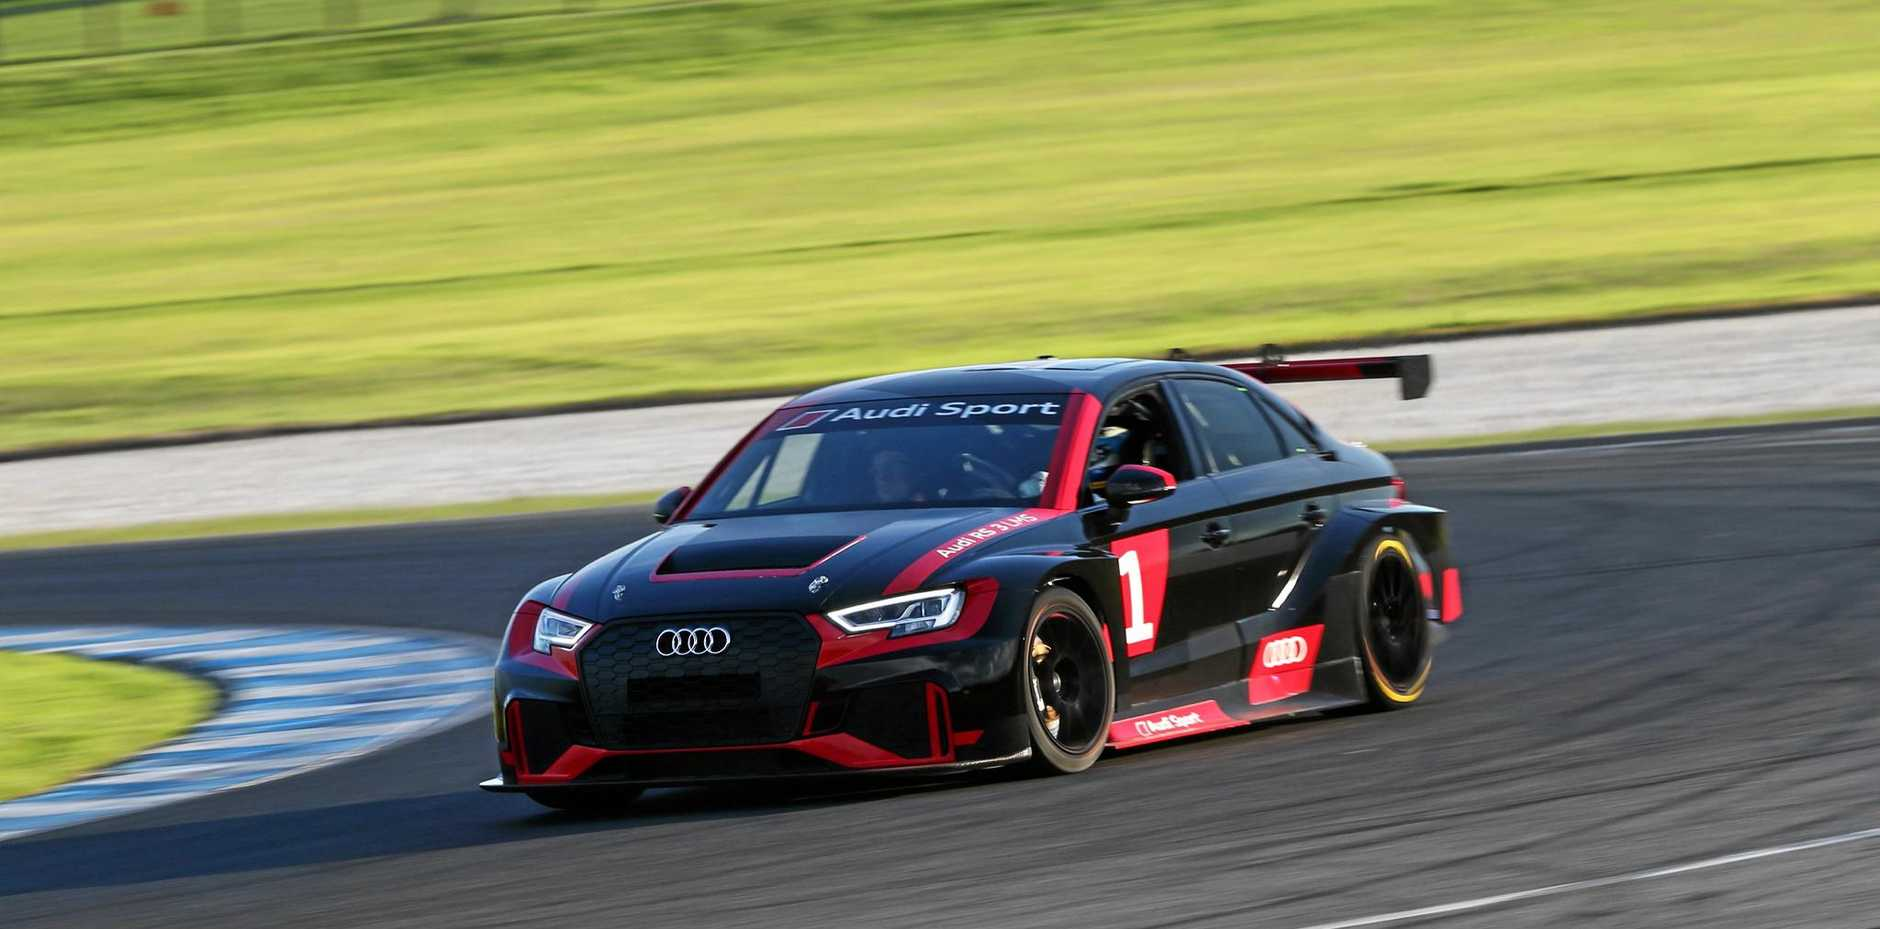 The $200,000 Audi RS 3 LMS race car uses a 2.0-litre four-cylinder turbo engine and sequential six-speed transmission but lacks driver aids such as ABS brakes or traction control.